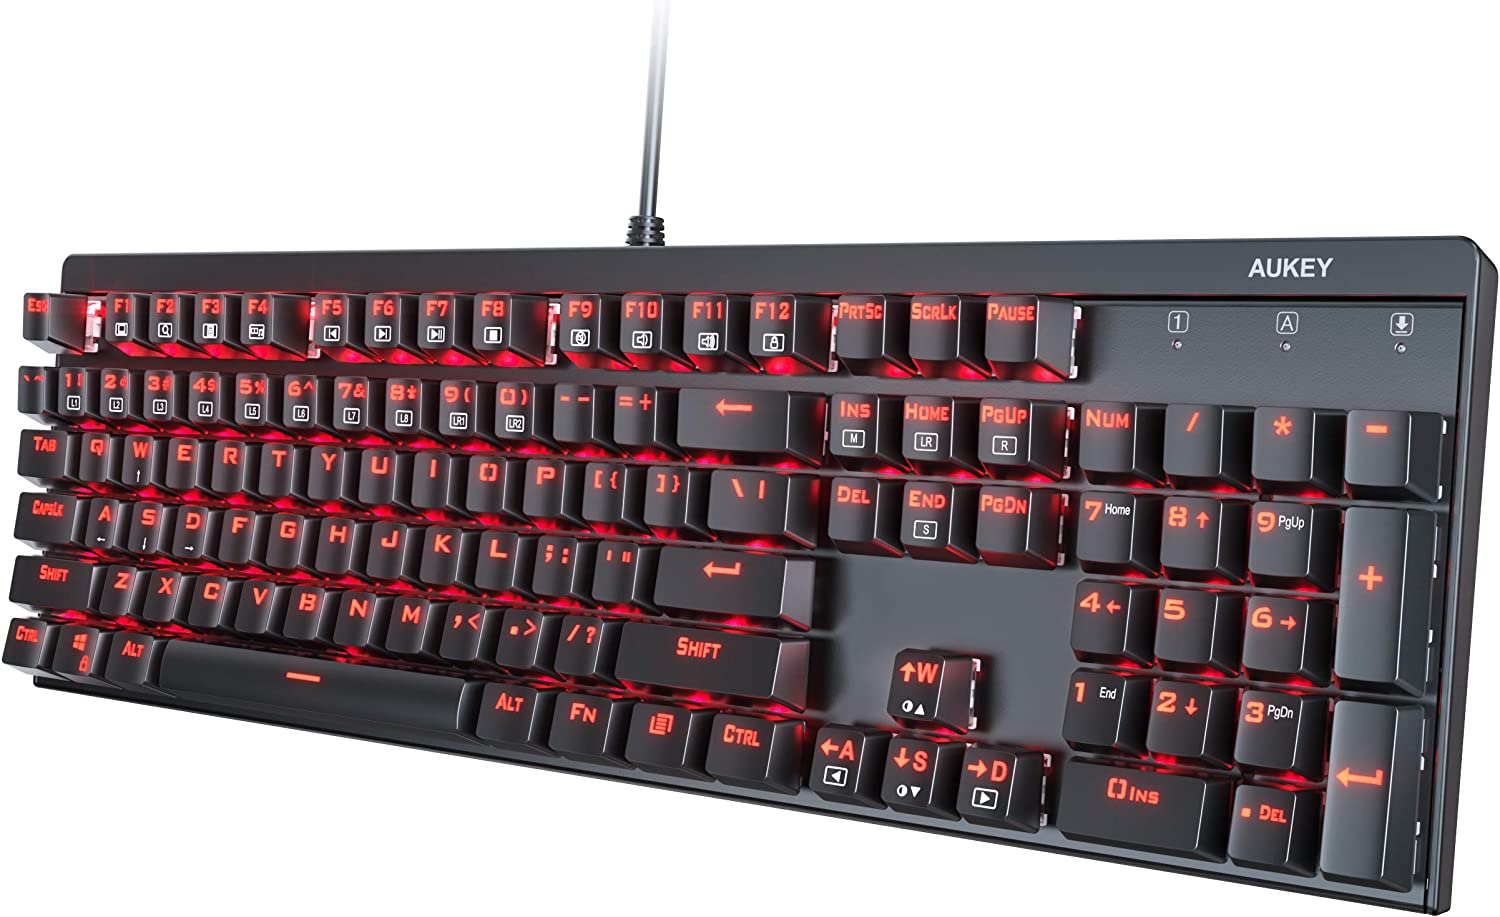 AUKEY Mechanical Keyboard Red Switch Gaming Keyboard with Red Backlit, 104 Keys 100% Anti-ghosting with Metal Top Panel and Water-Resistant Design for PC and Laptop Gamers, Black